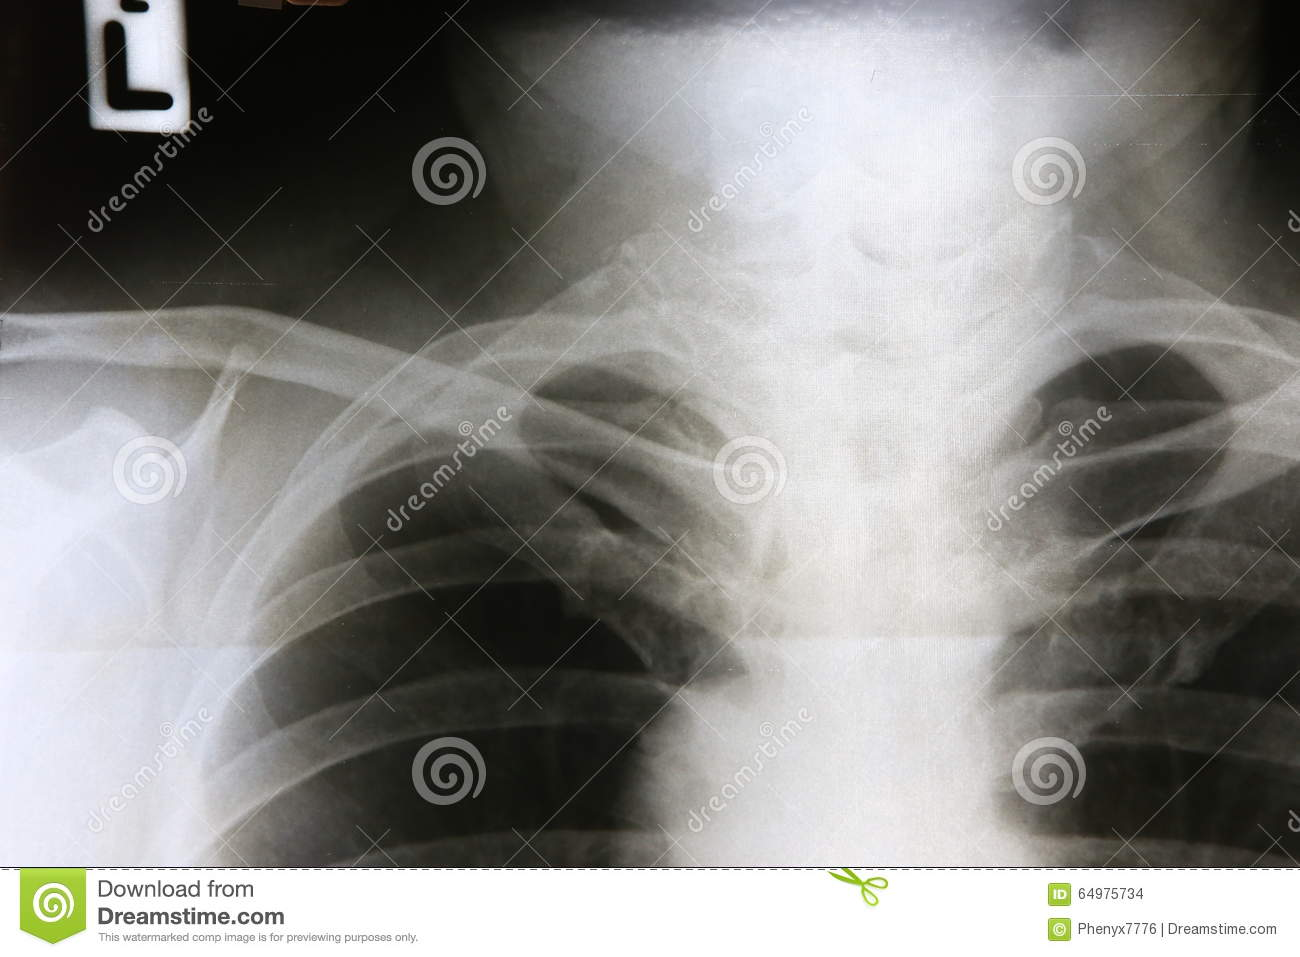 Film x-ray right clavicle stock photo. Image of anatomy - 64975734